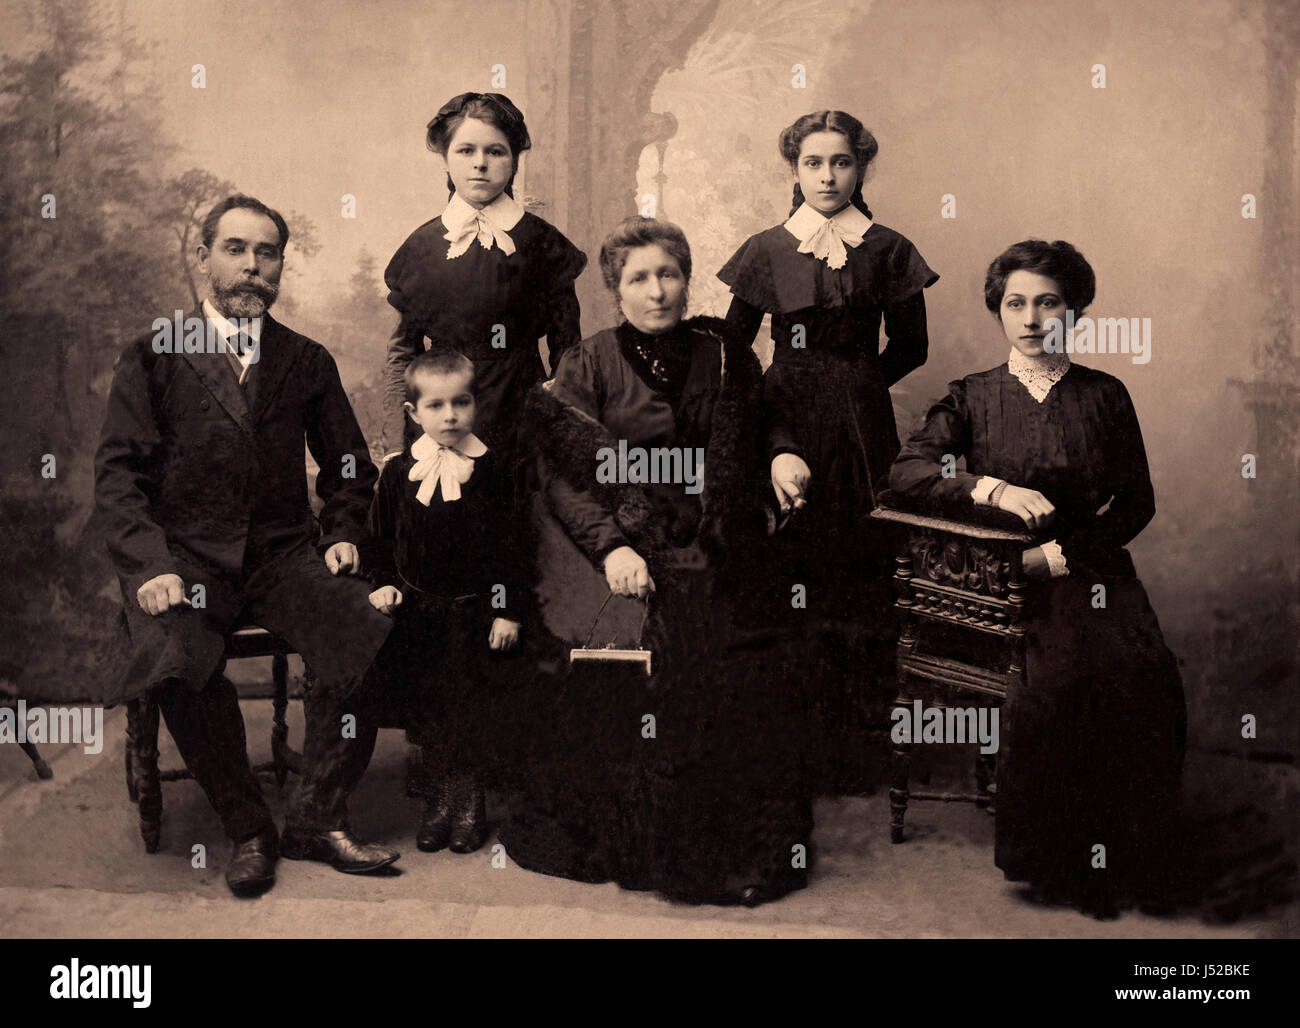 Family portrait, people of all ages, circa 1911. - Stock Image